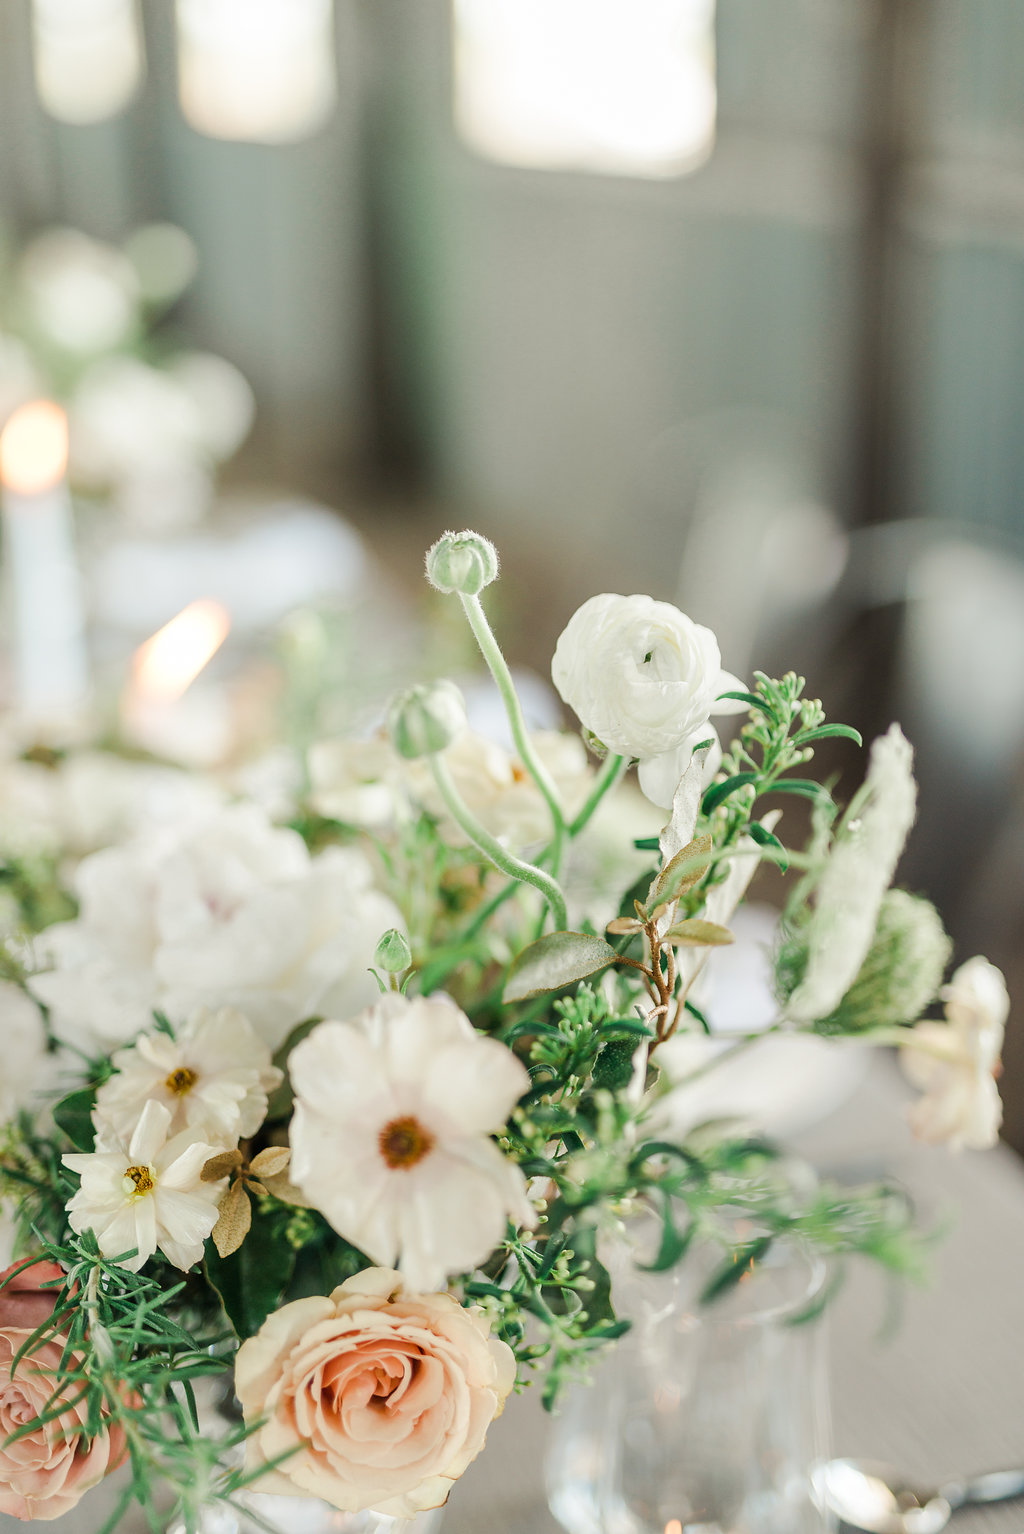 romantic industrial minimal neutral wedding floral inspiration houston austin wedding venue planner coordinator epoch co+